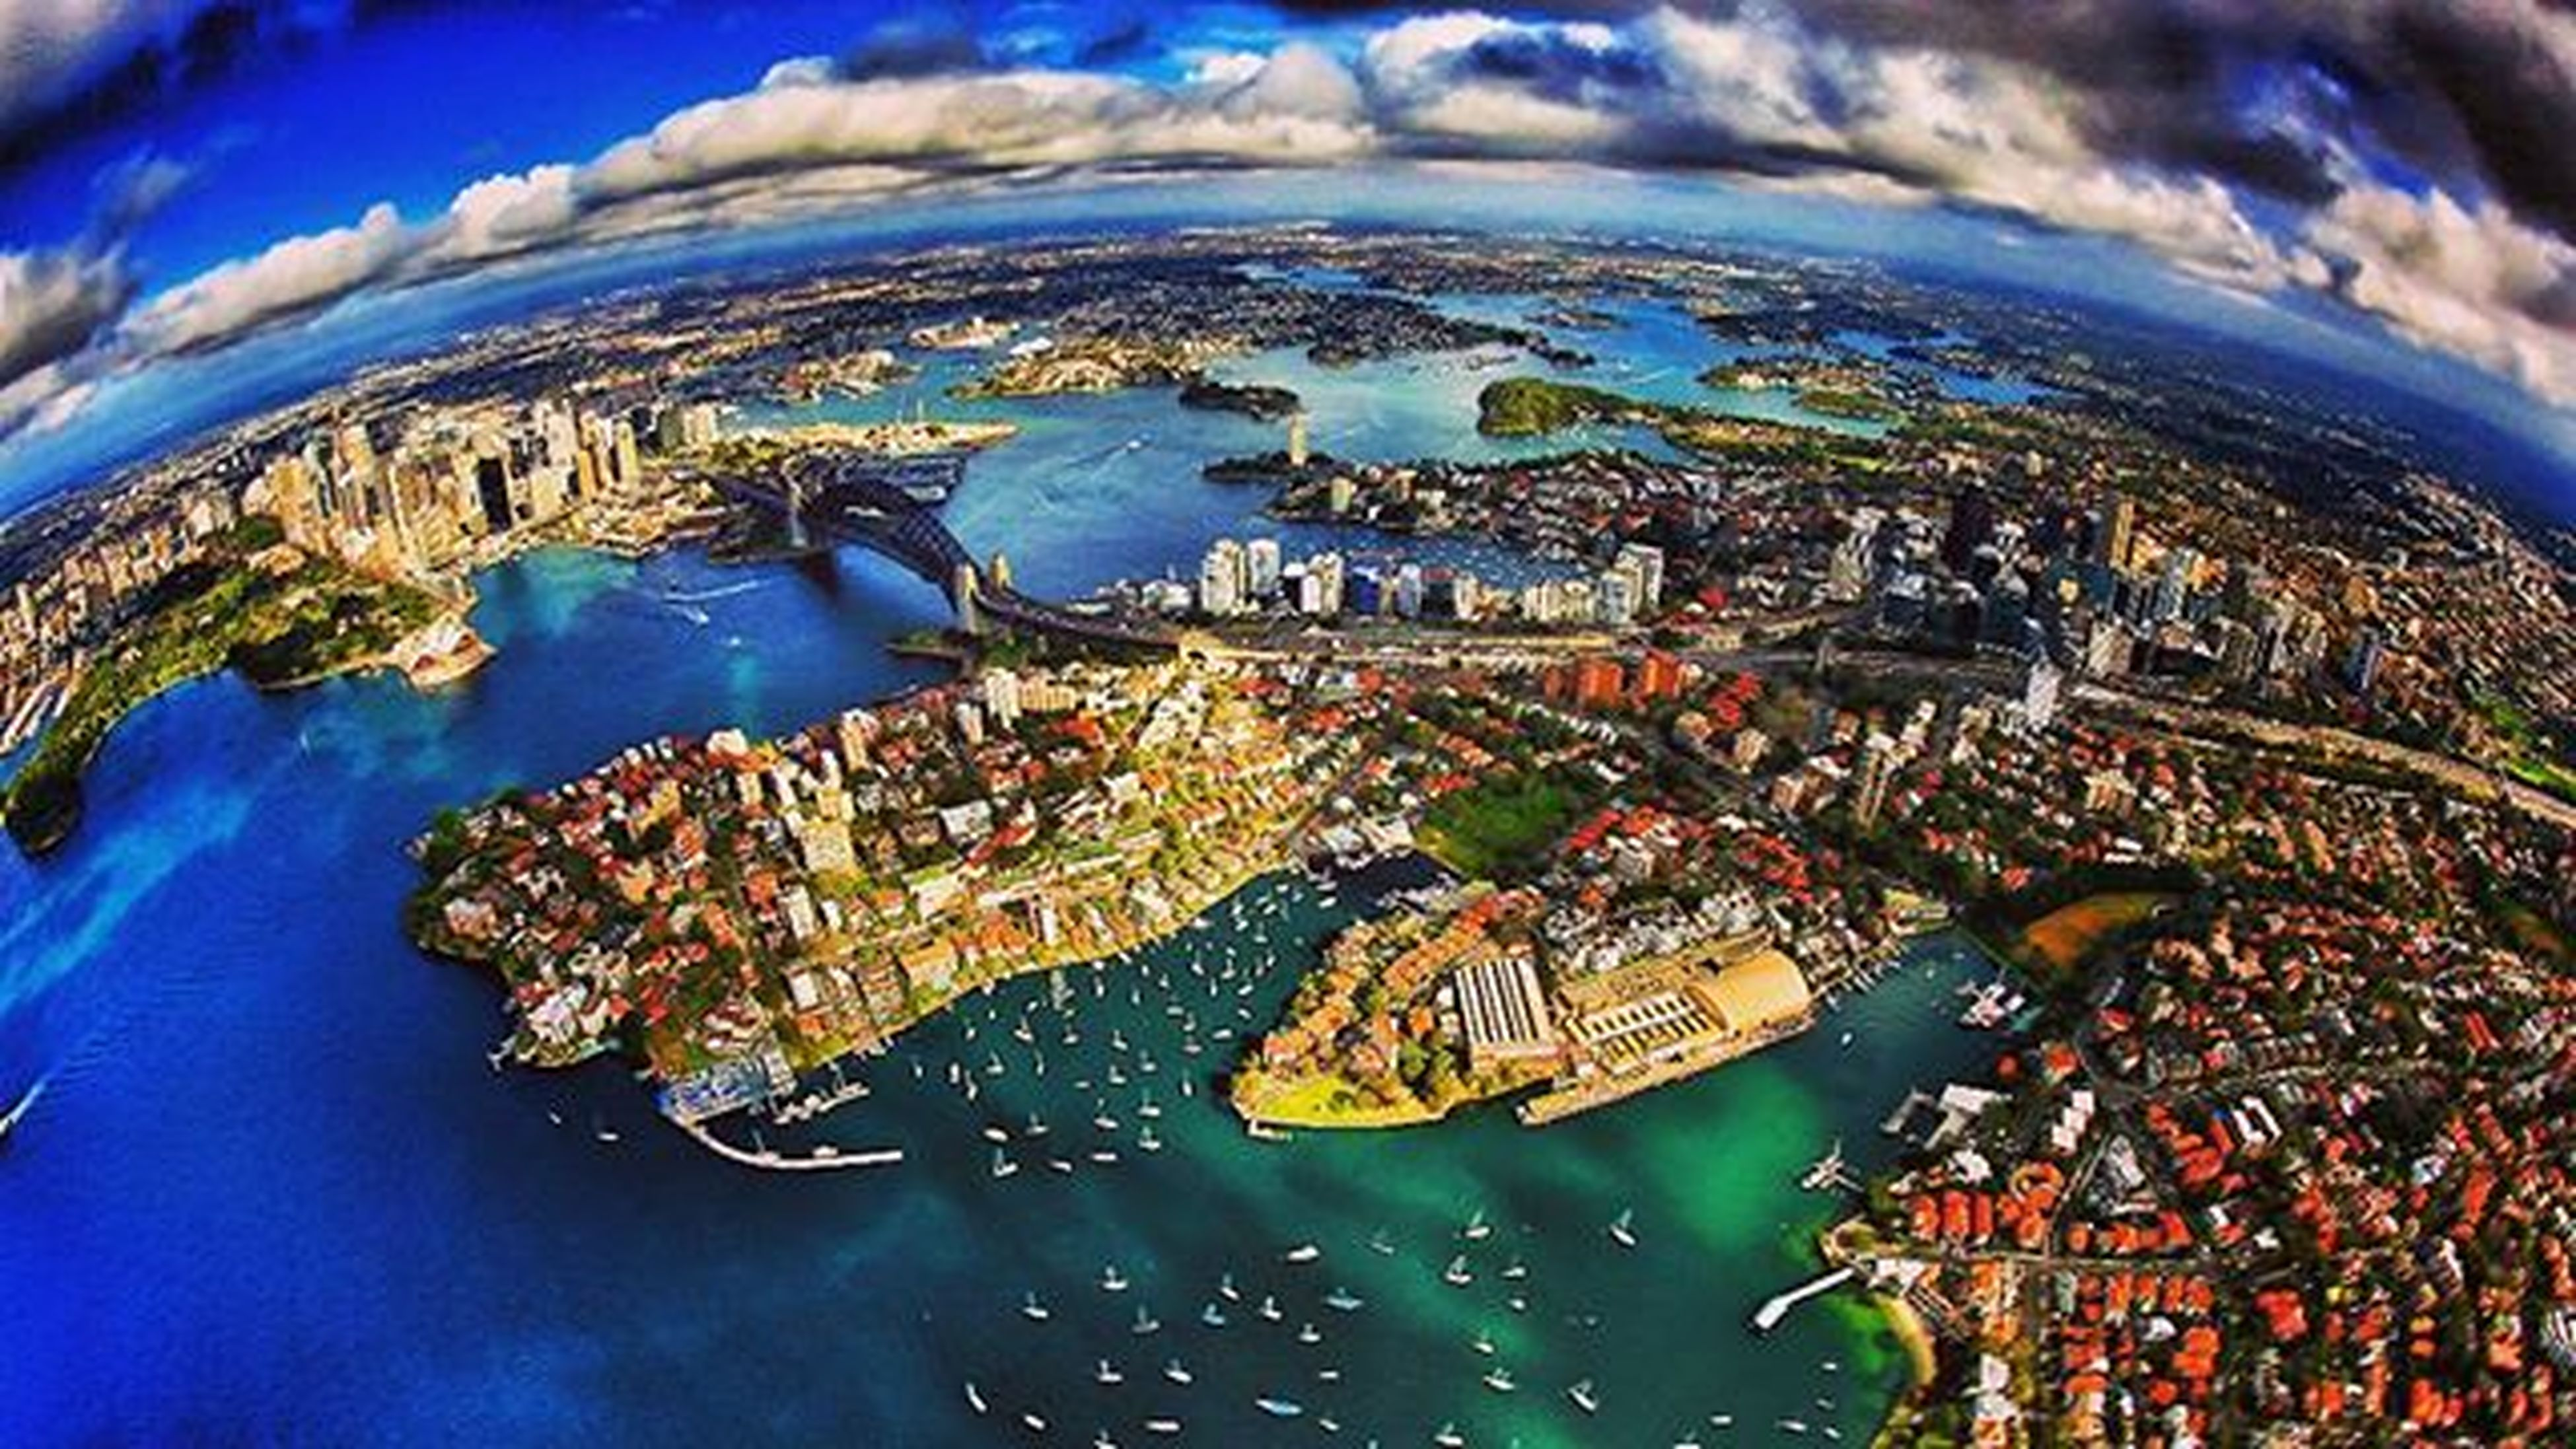 Dont stop Sydney to impress. Half of world might be here, literally and metafor... Blue, green, water or land, yet thousands of people from arround the globe gathered here, and coloured Sydney. Colors Clouds Skyporn Aerial Aerialphoto Sydney City Australia Newsouthwales Visitnsw Visit_nsw Tourism Travel Cityadventure Myfeatureshoot Globe Wanderlust Beautifuldestinations Alldayexploring Aerialphotography @bimaprasena